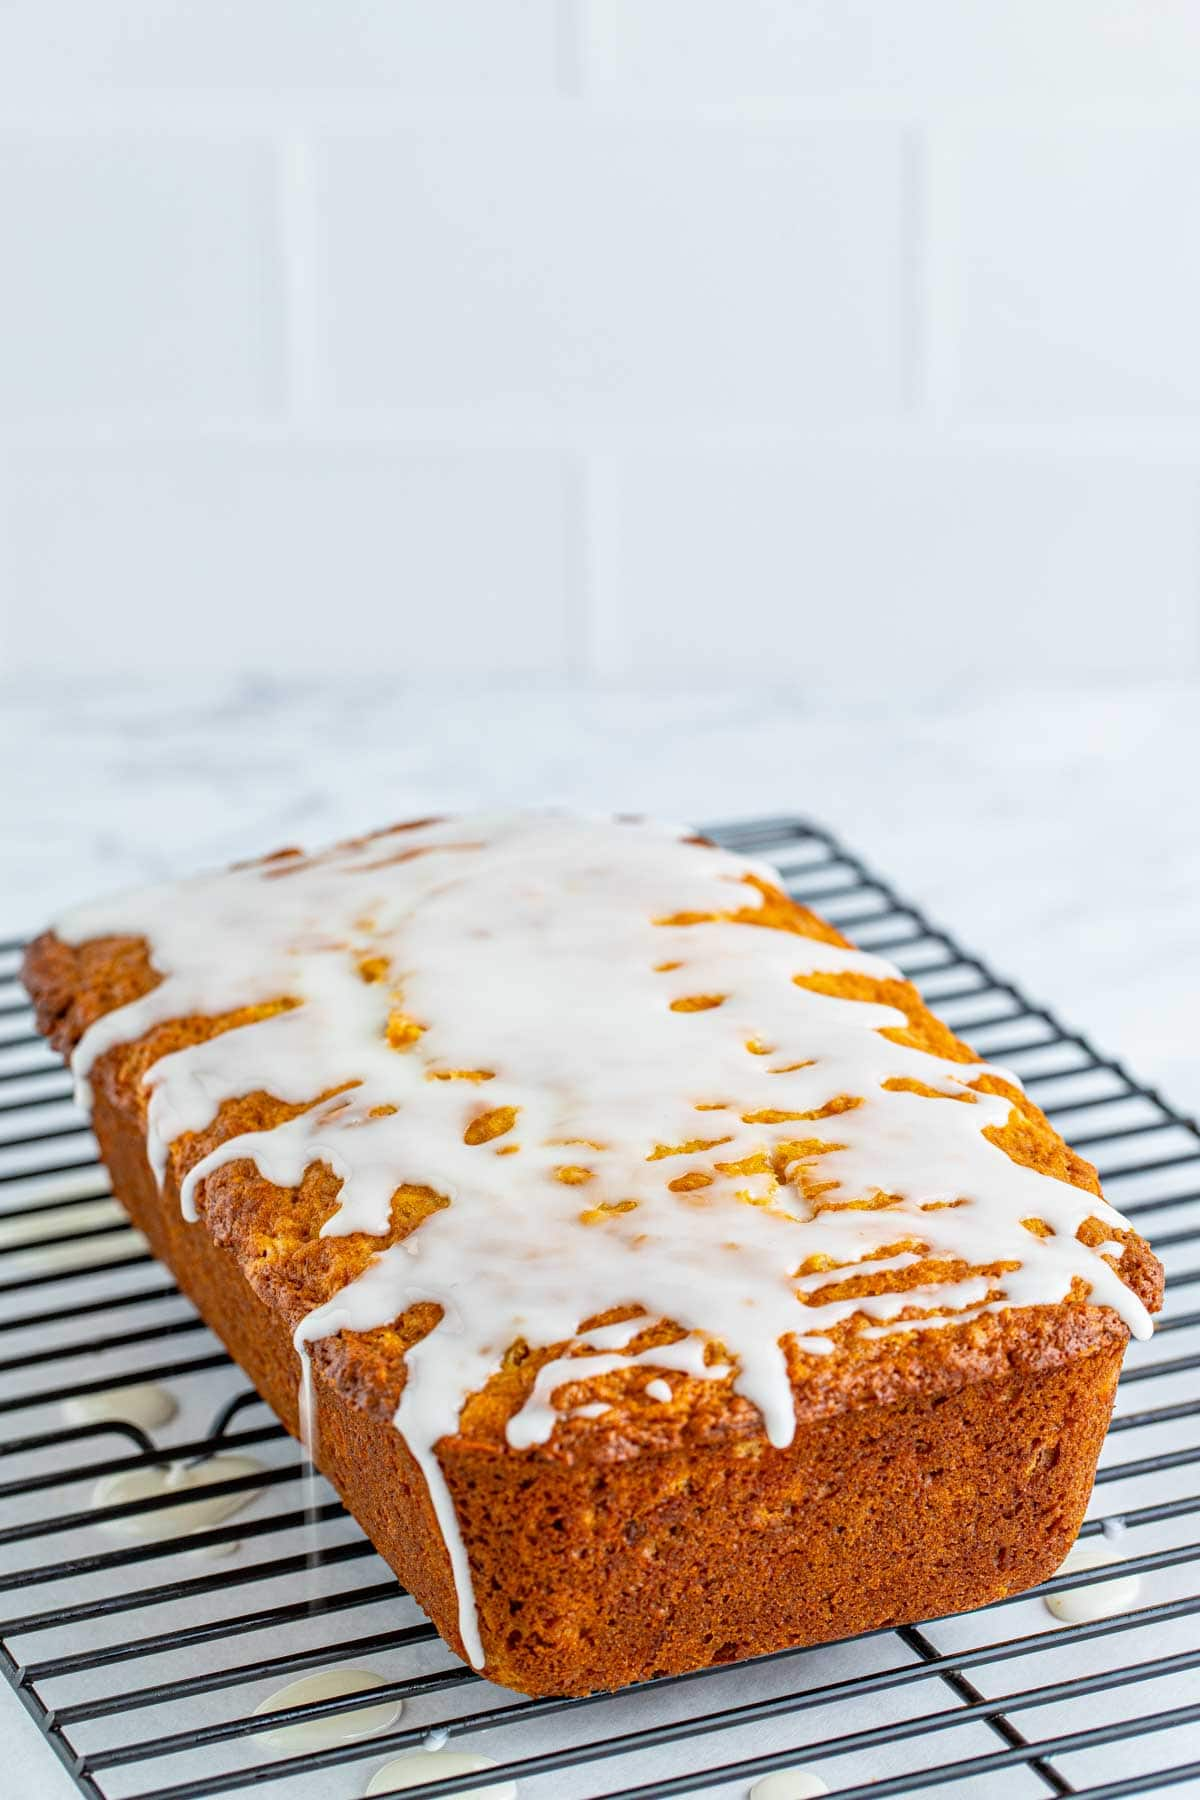 pineapple bread with glaze on top of a wire rack